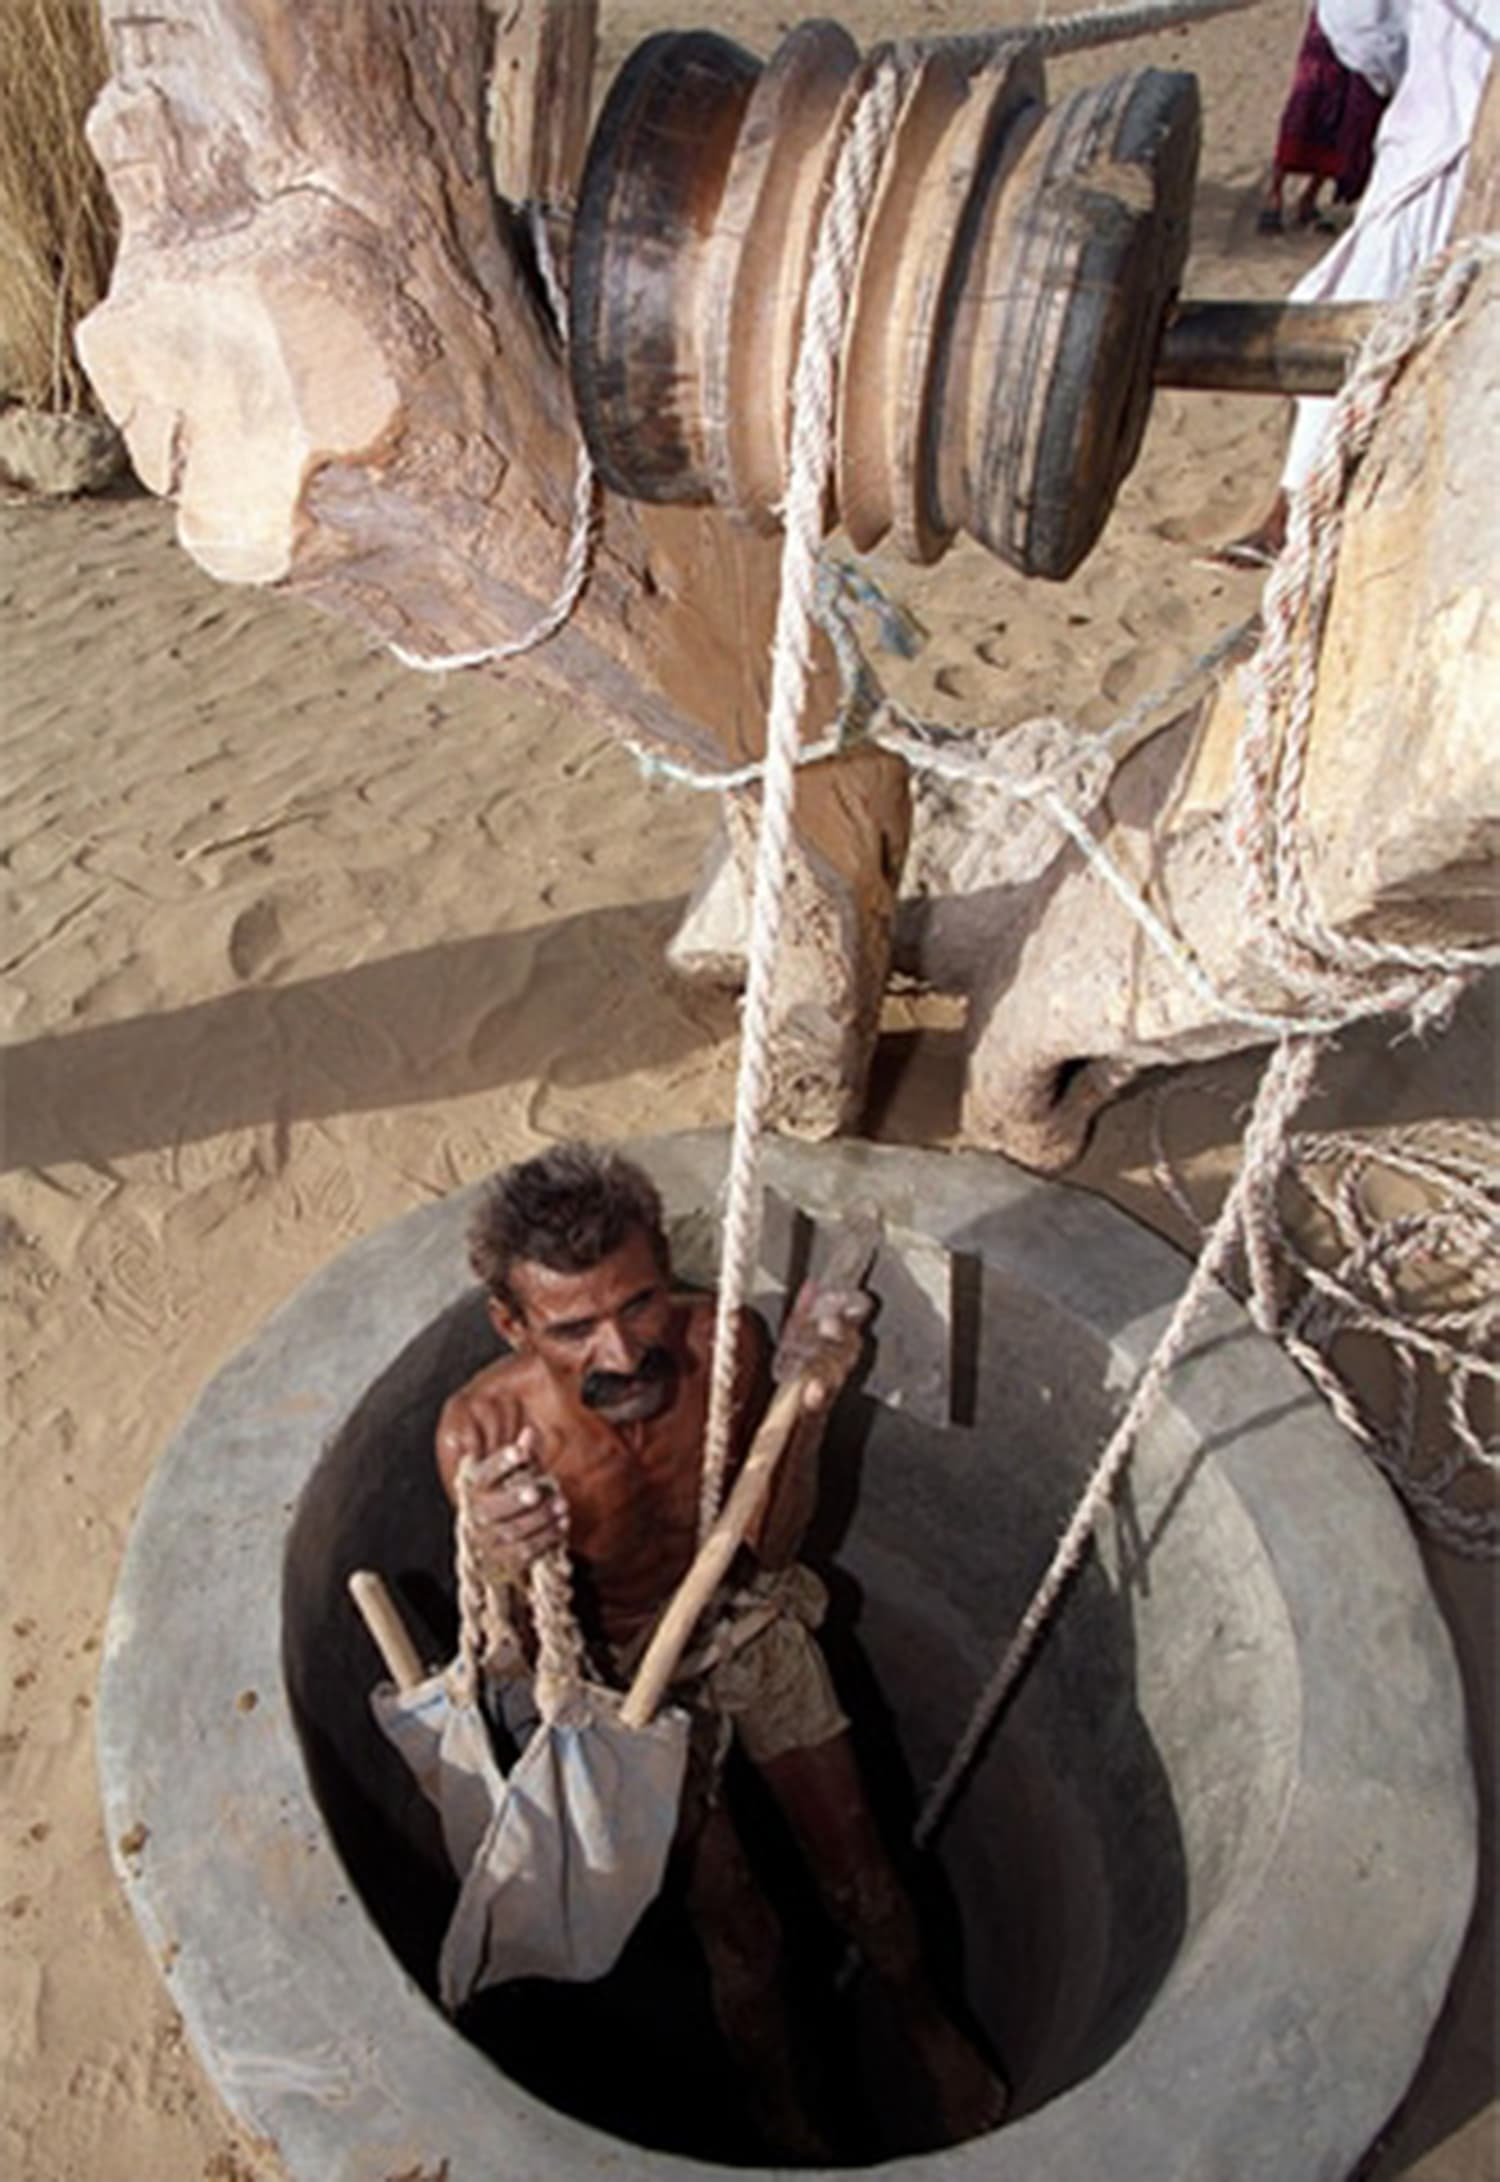 In search of water, a Thari villager climbs down into a dried up well to dig deeper. —AFP/File